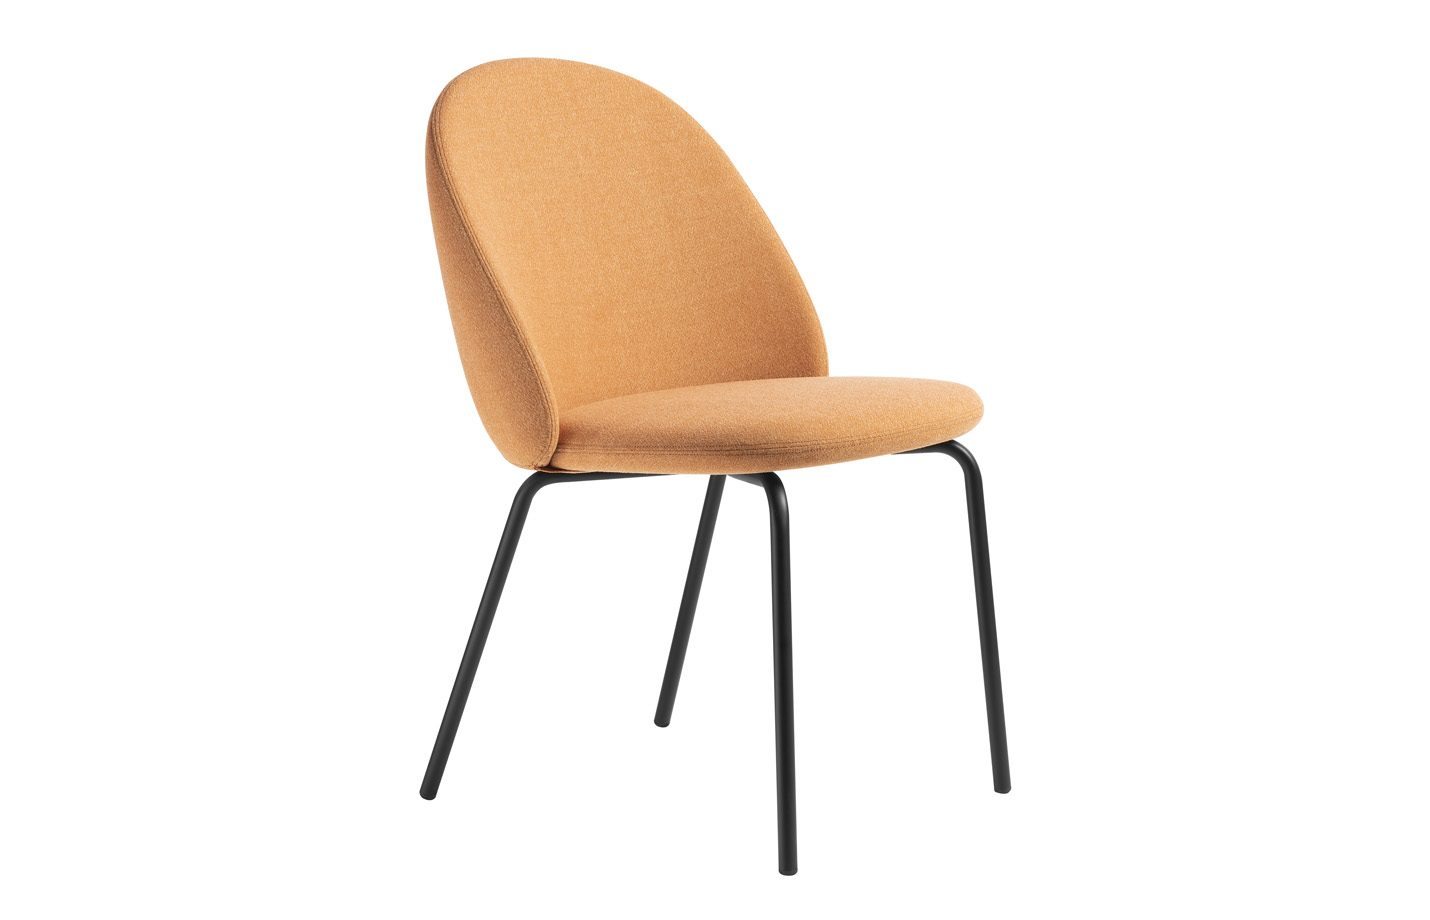 Iola-designer-dining-side-chair-02